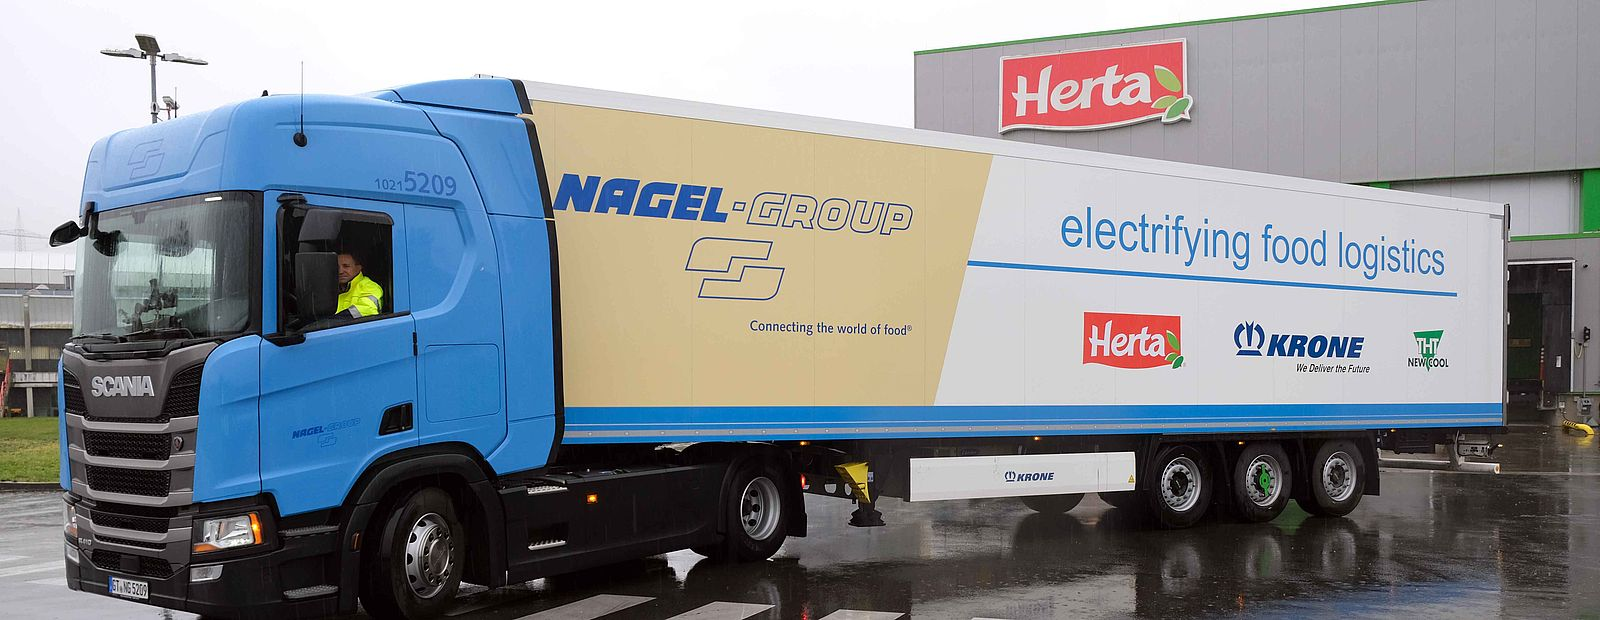 Nagel-Group and Herta test electric Krone trailer